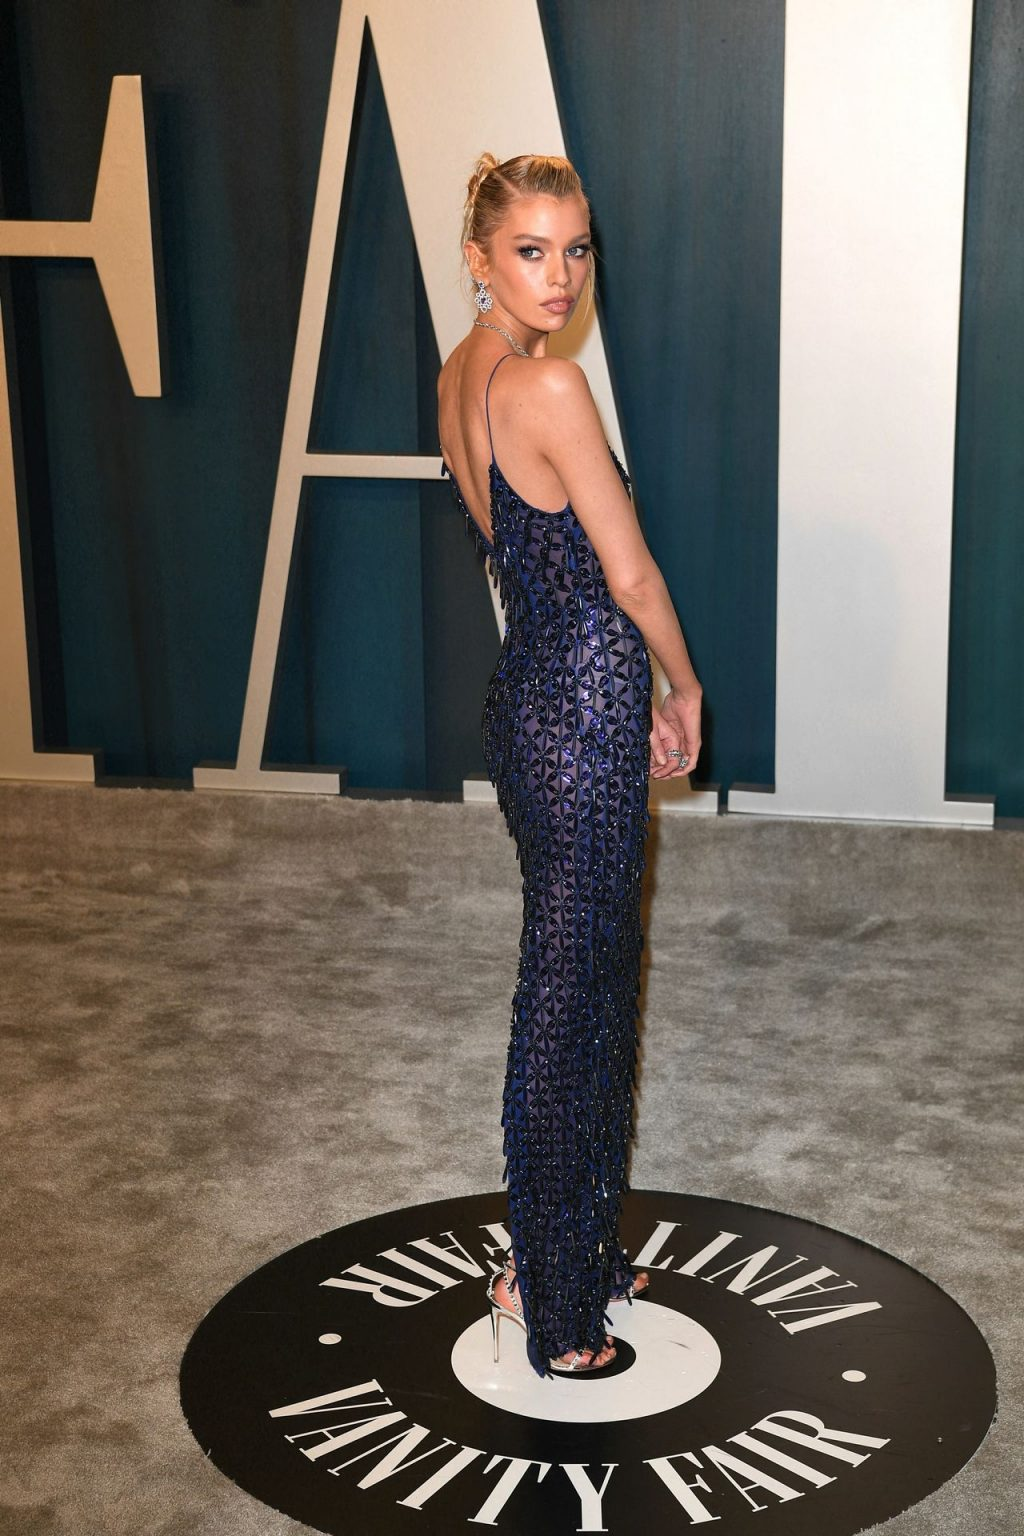 Braless Stella Maxwell Looks Hot in a Blue Gown (32 Photos)